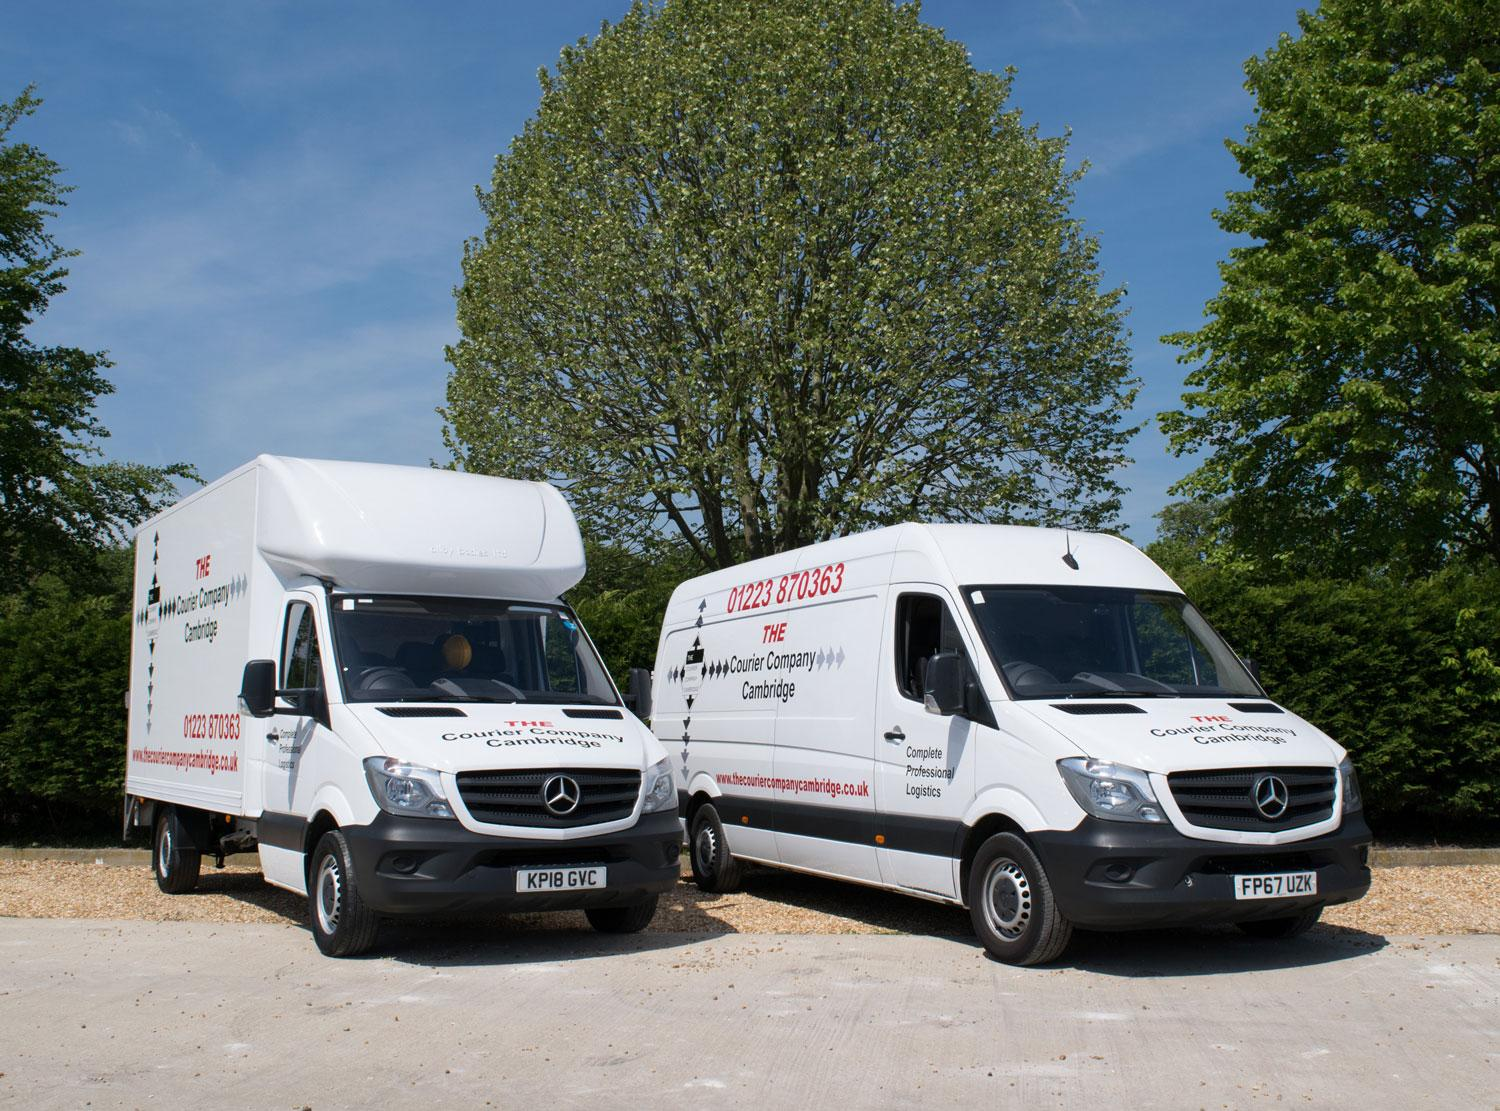 The Courier Company Nationwide delivery vehicle luton and lwb vans